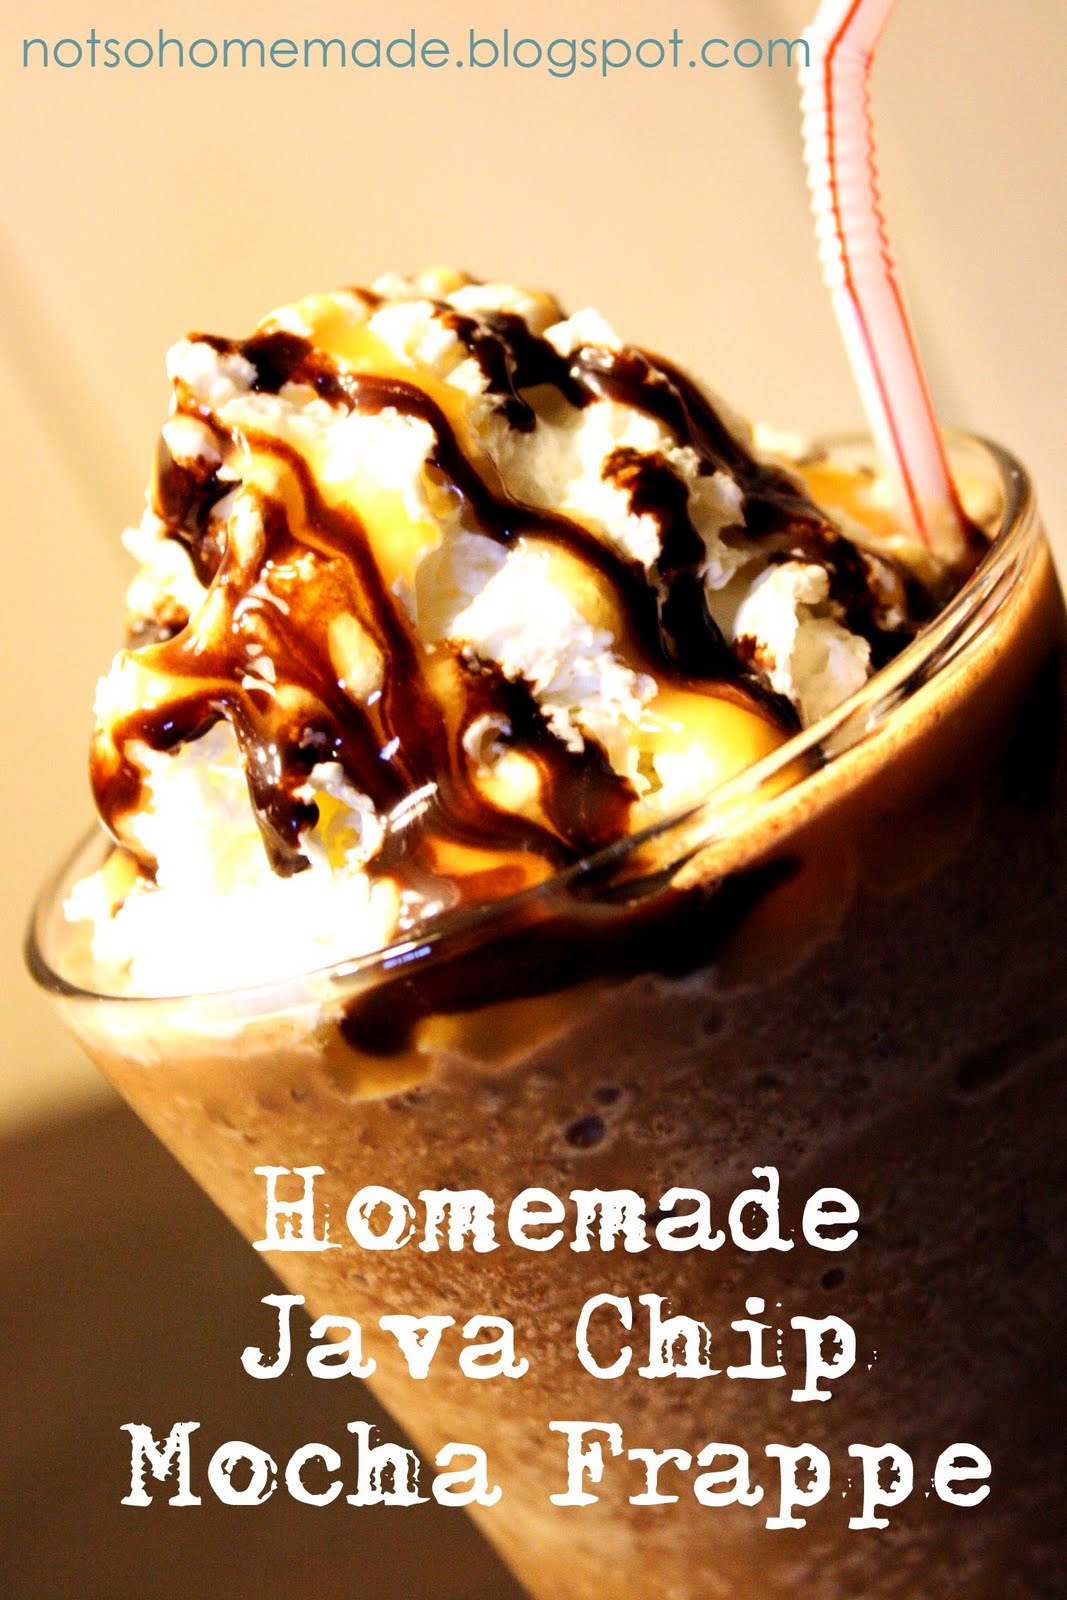 Not So Homemade: Homemade Java Chip Mocha Frappe